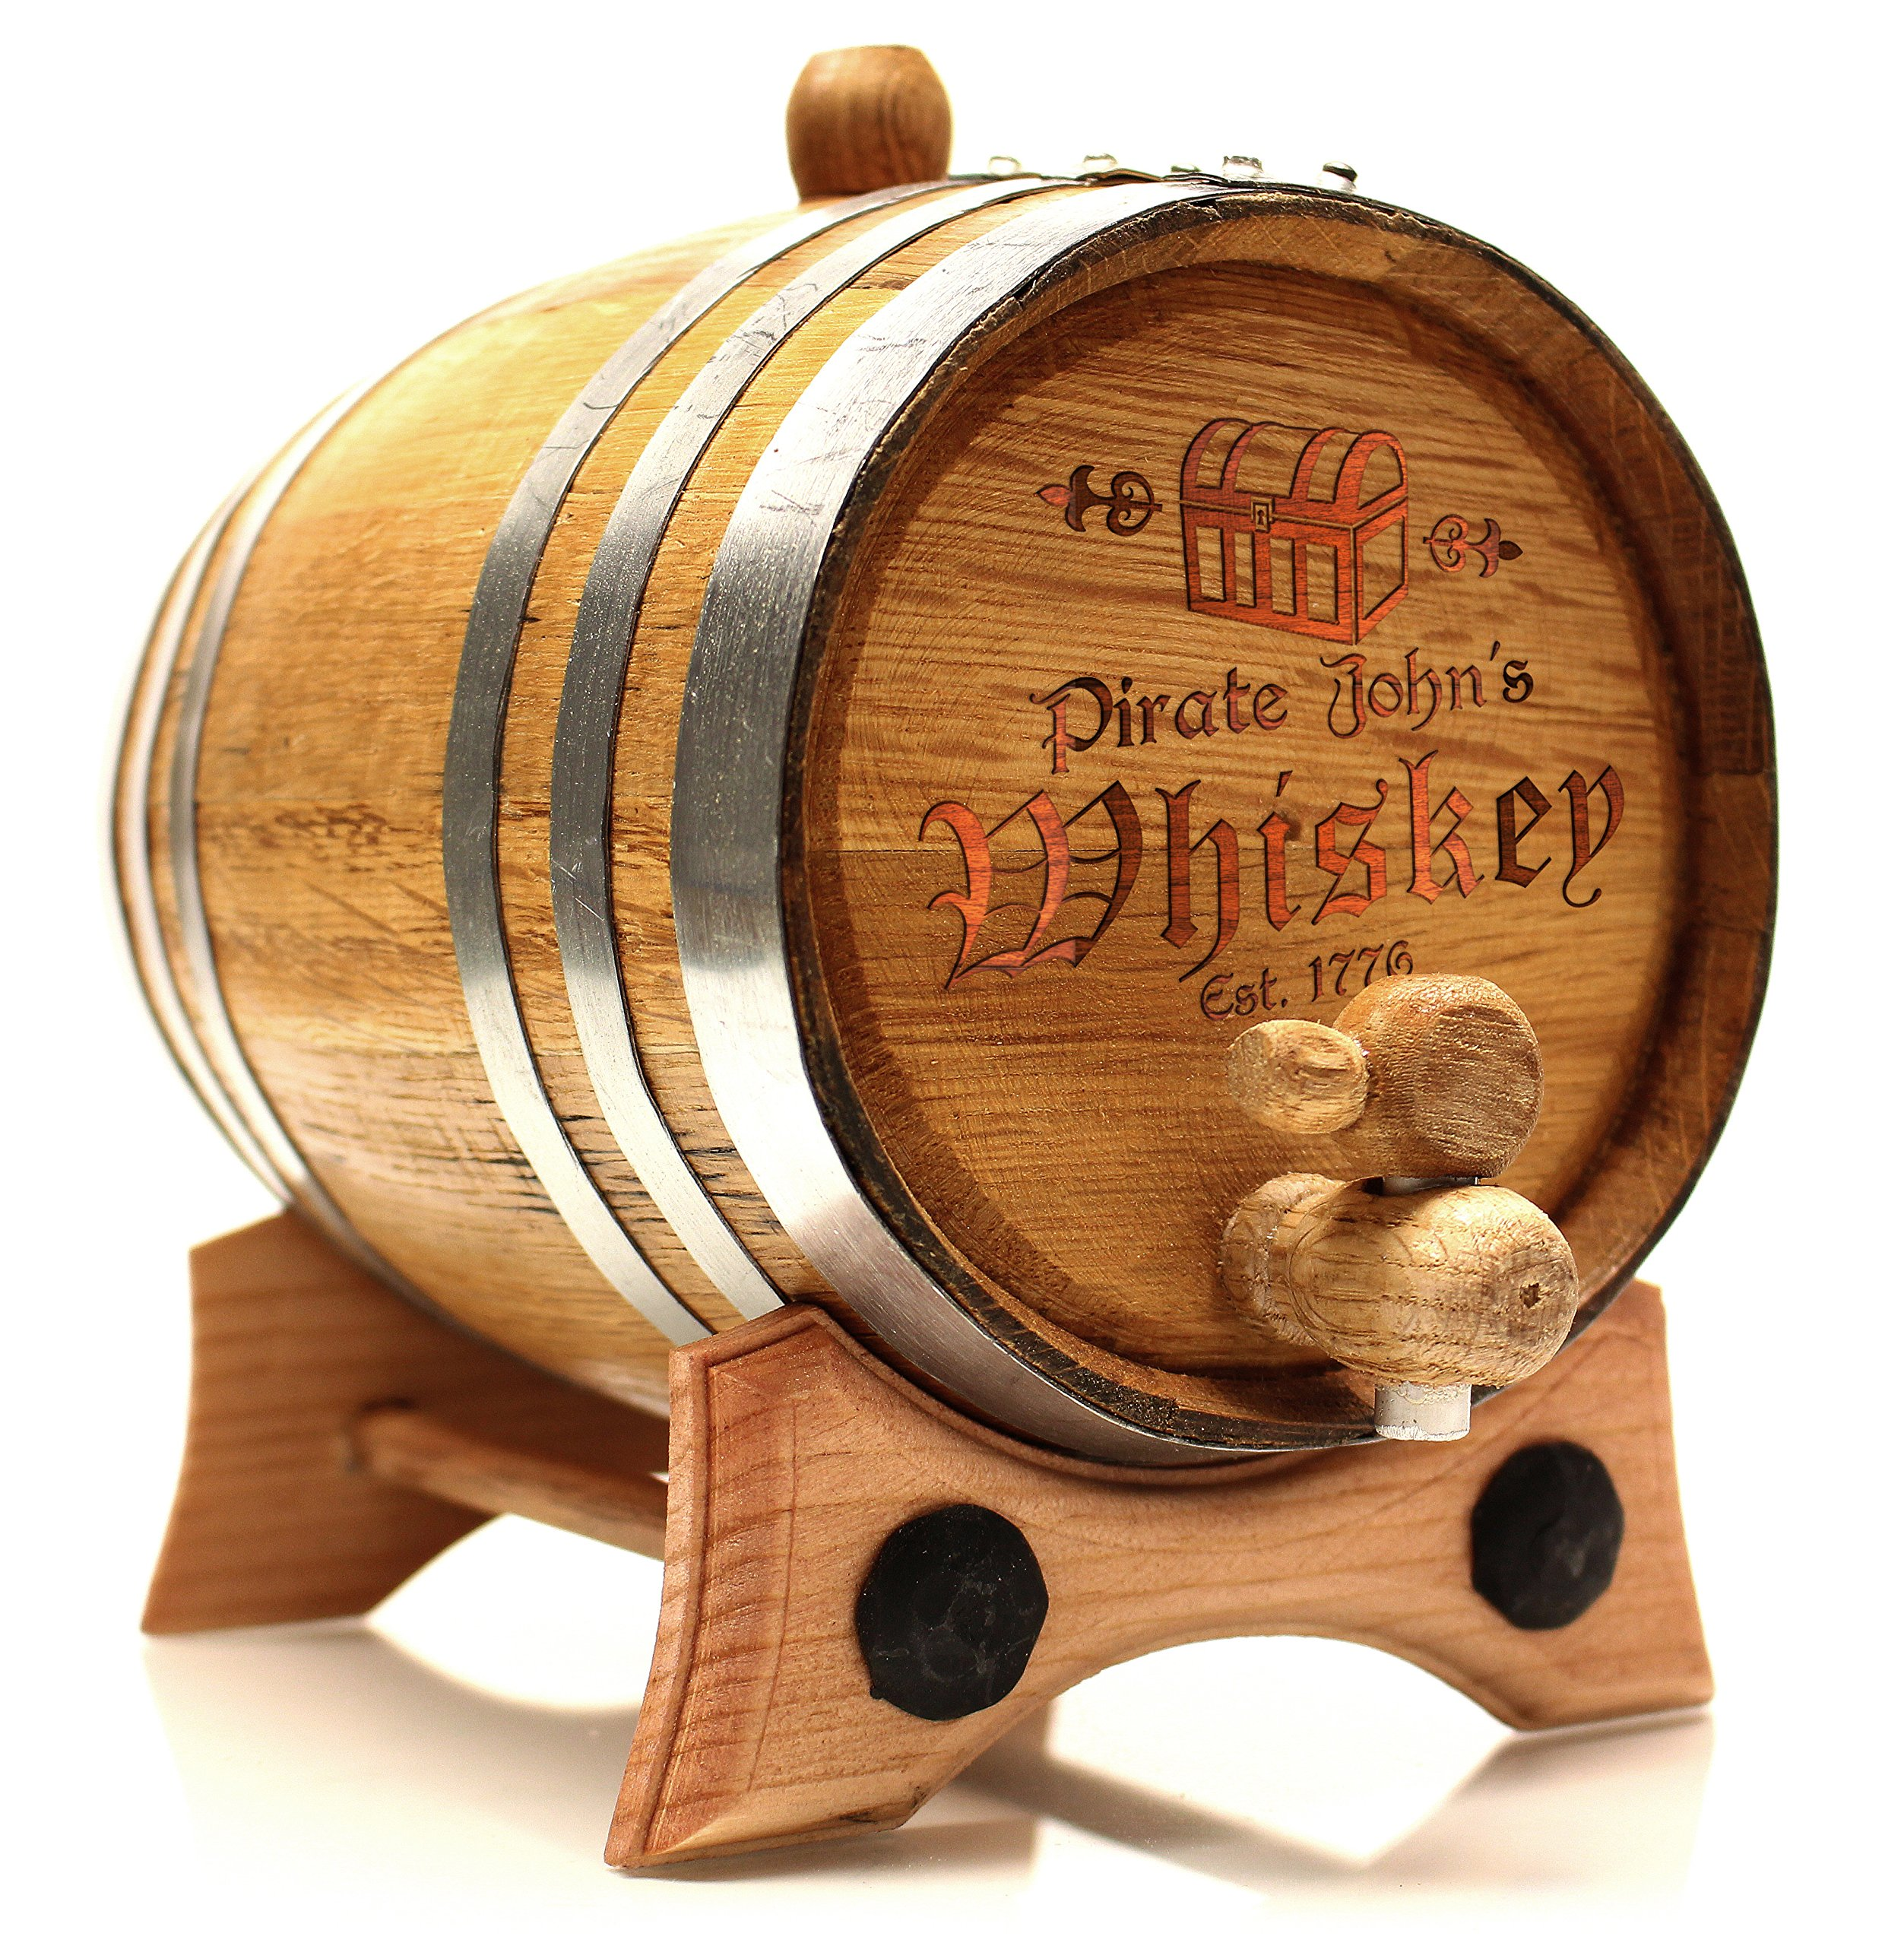 2 Liter Custom Engraved Pirate Golden Oak Barrel - Polished Steel Hoops | 30 page Aging Guide | Paper Funnel | No Leaks Guarantee